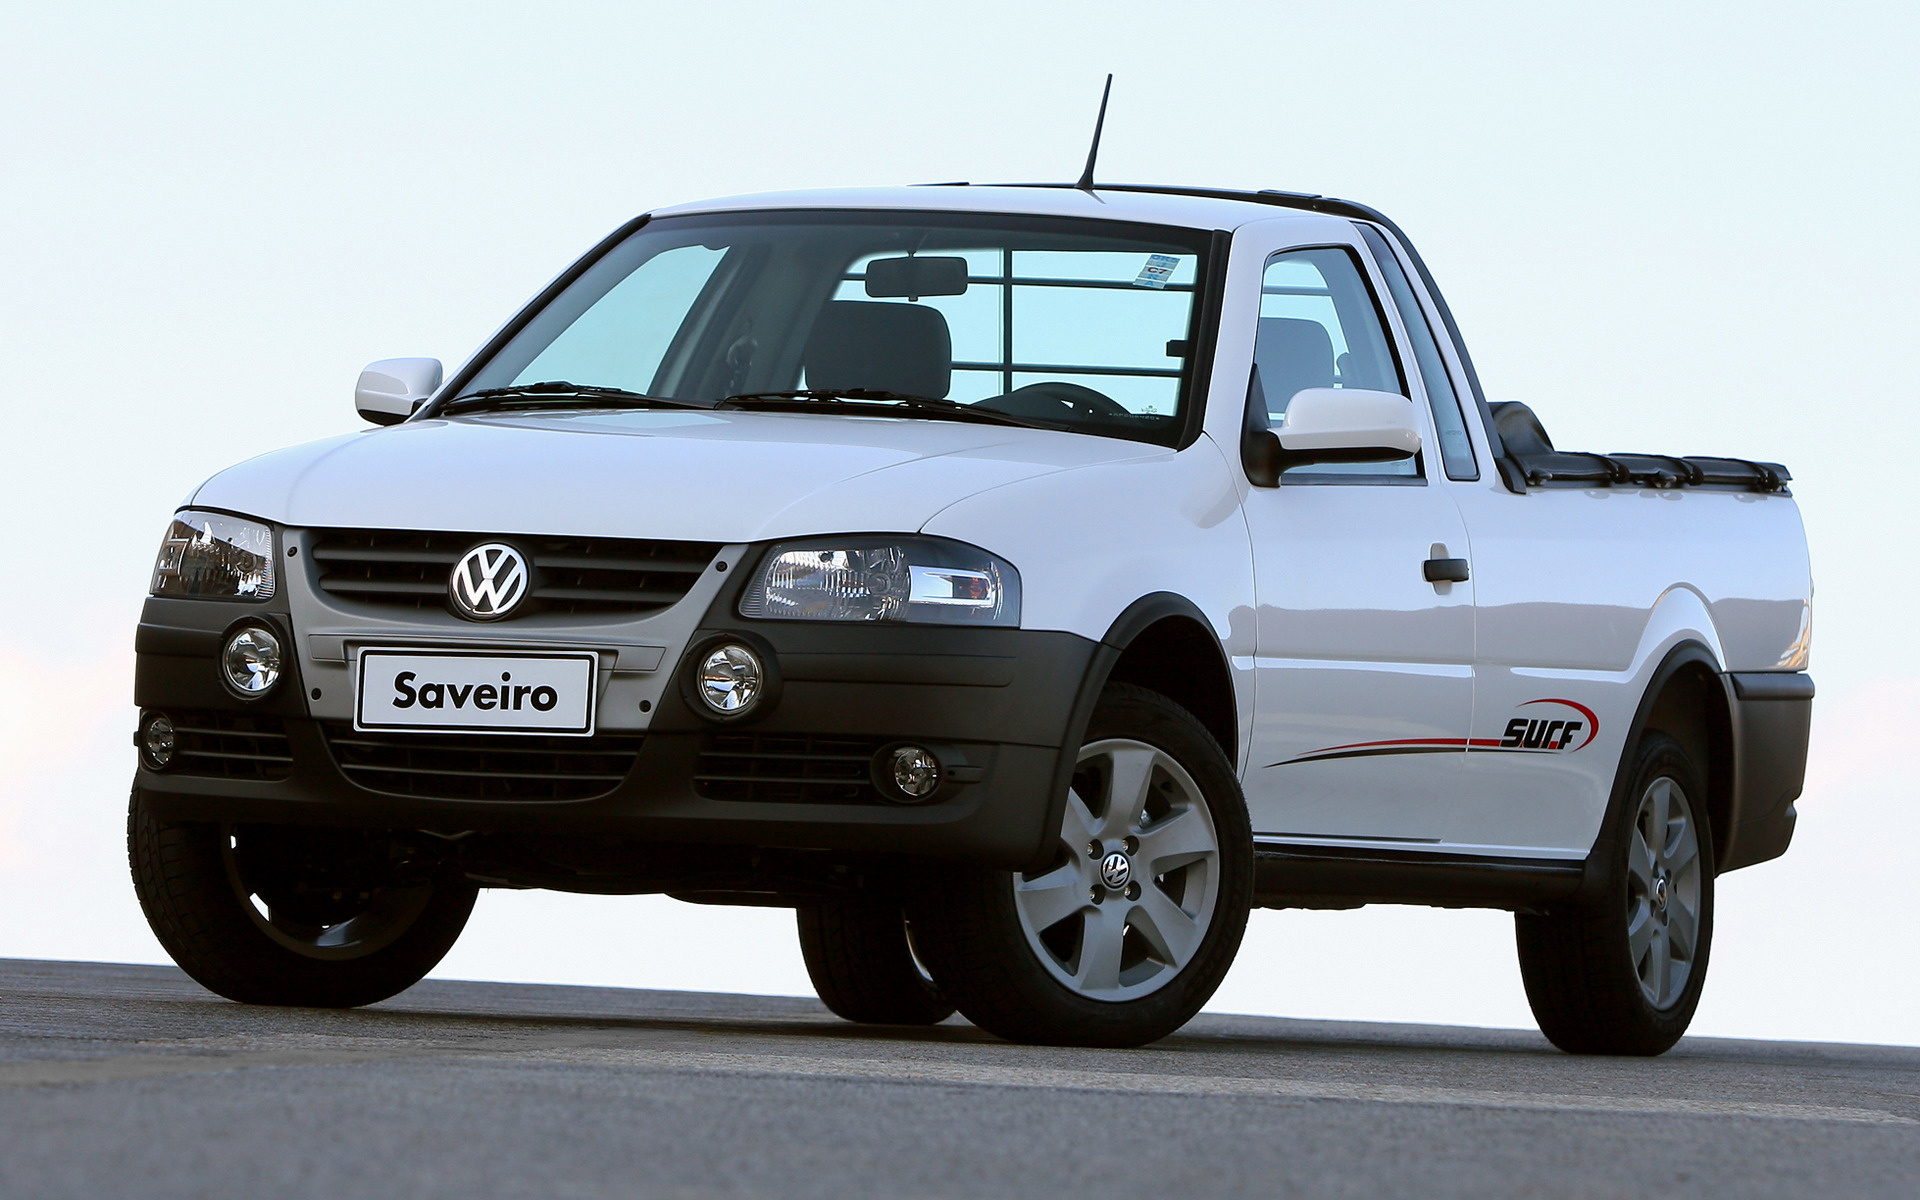 2008 Volkswagen Saveiro Surf   Wallpapers and HD Images Car Pixel 1920x1200